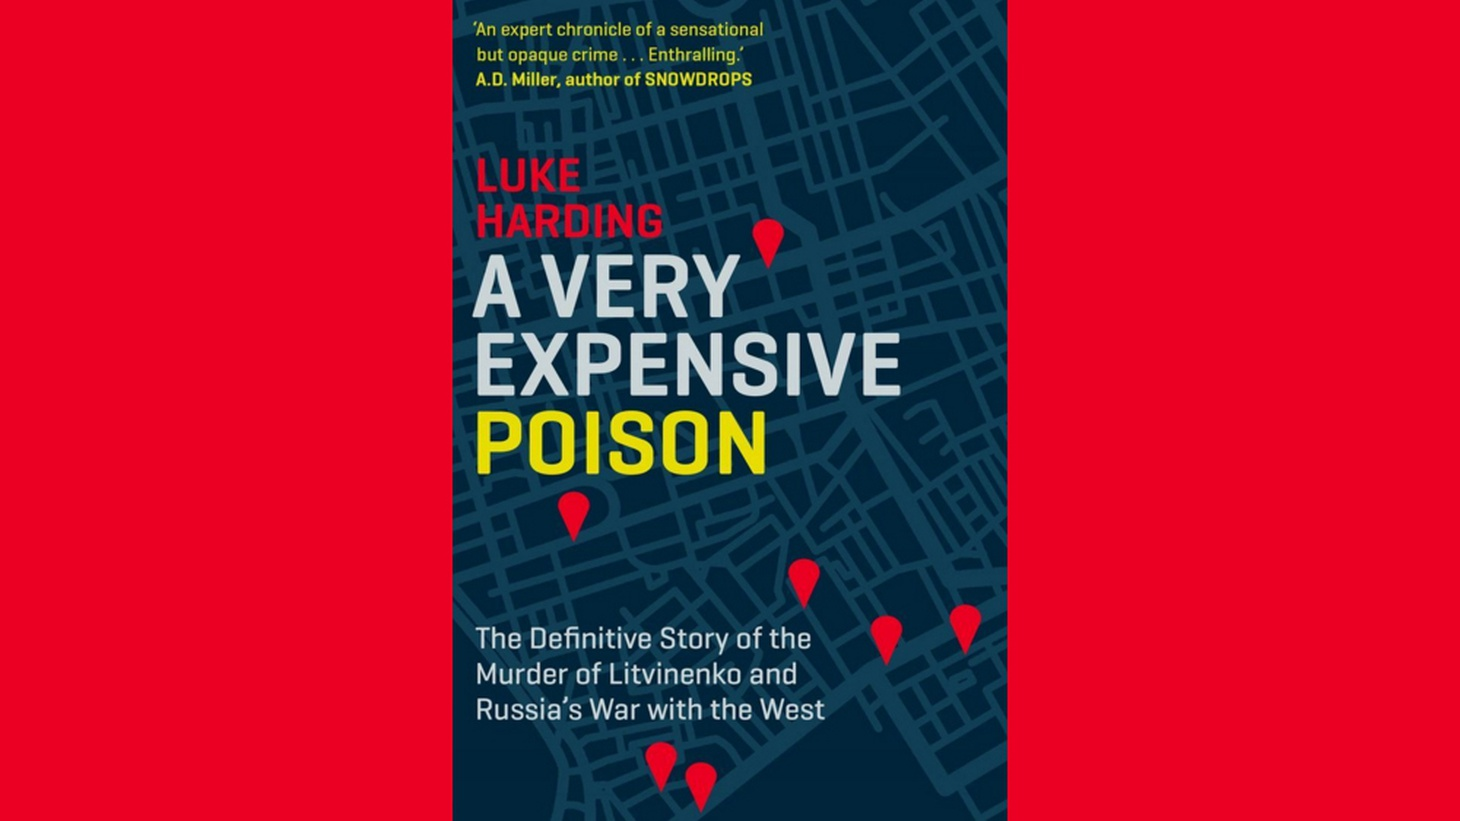 An exotic murder in London took years to solve, but the details are out, and we hear how radioactive poison killed one of Vladimir Putin's most outspoken critics.